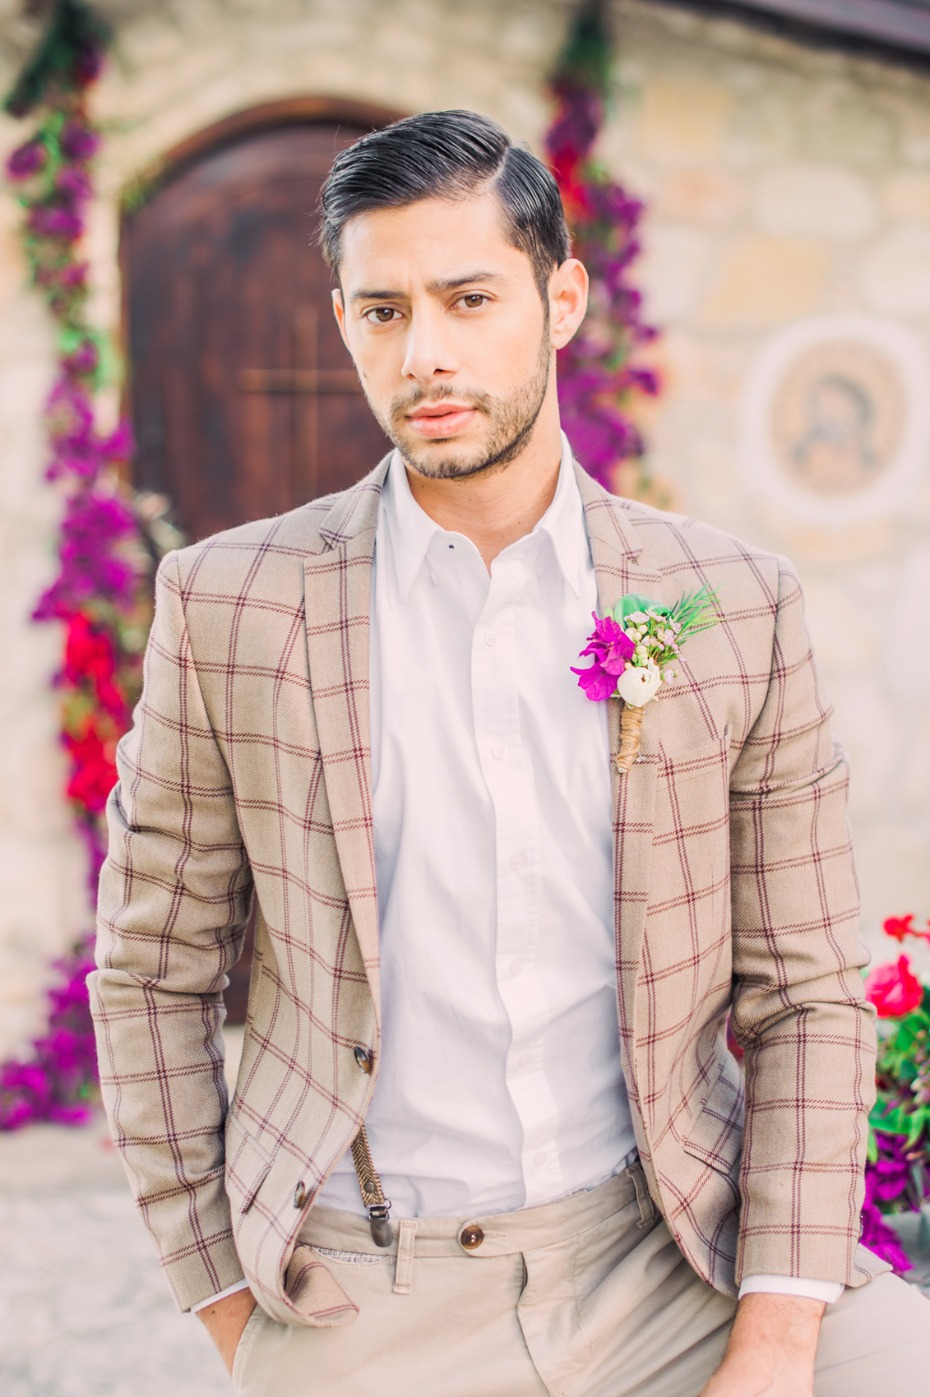 Classic country look for the groom